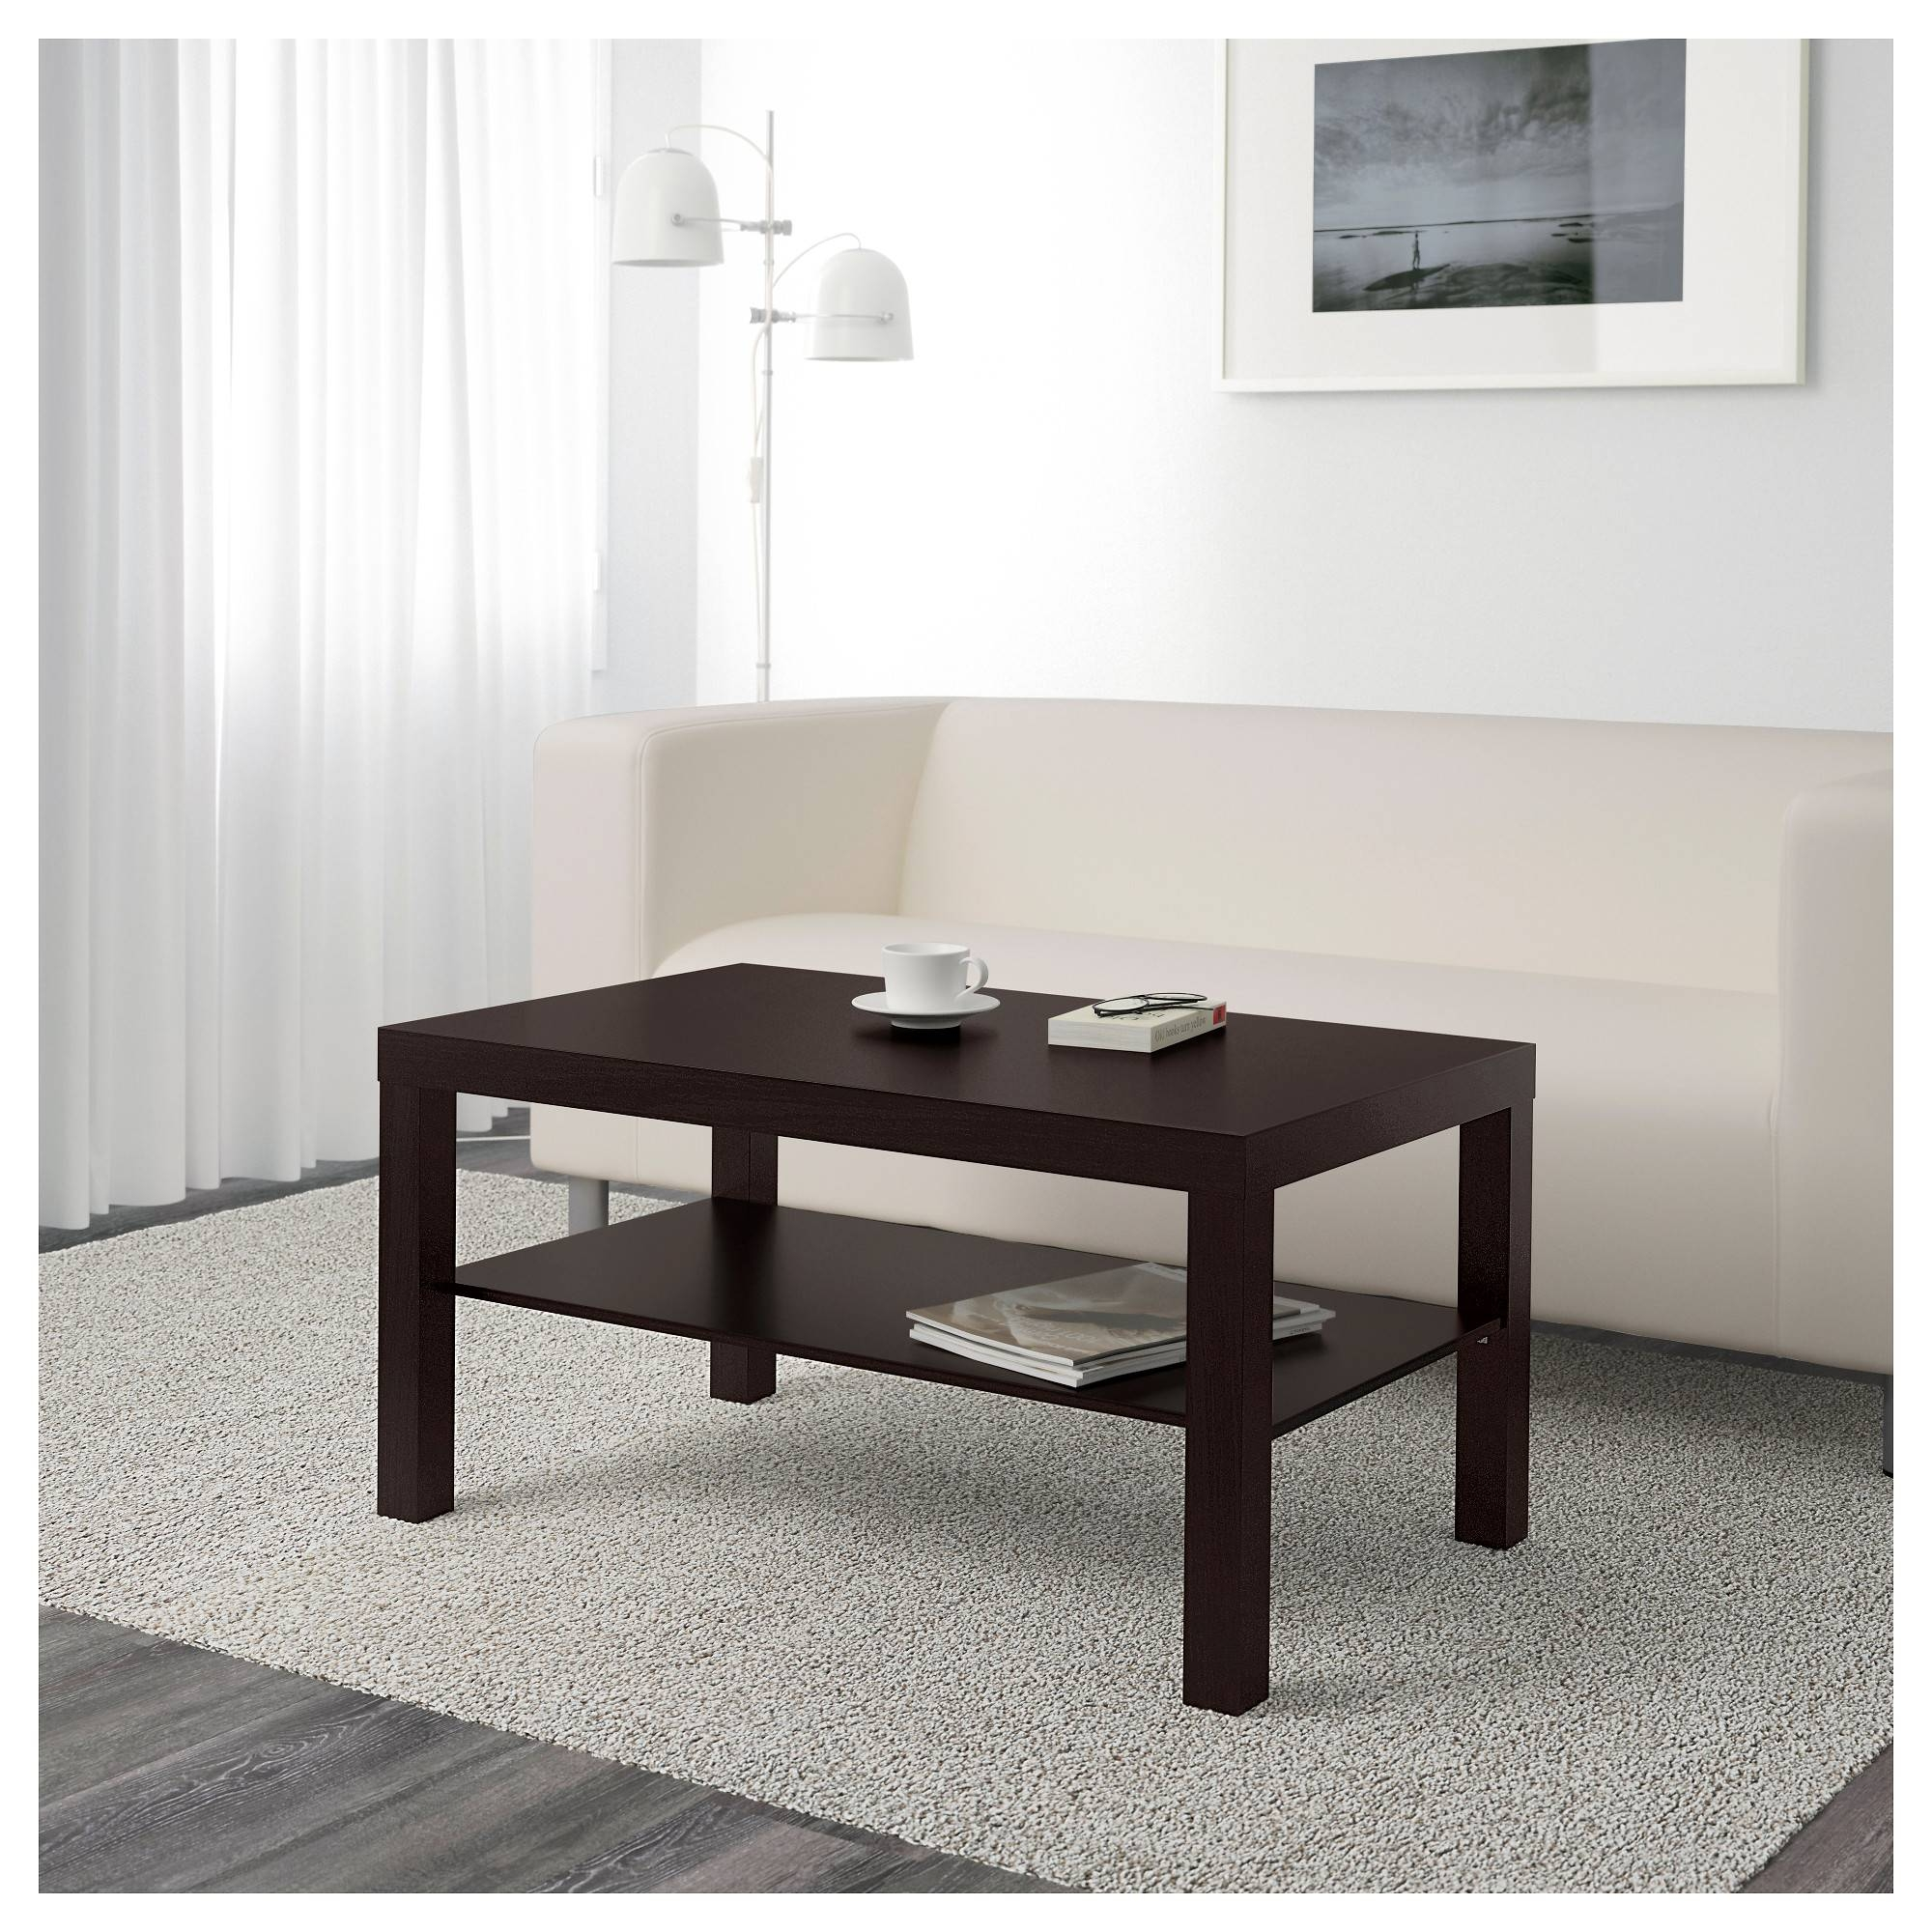 "Lack Coffee Table - Birch Effect, 35 3/8X21 5/8 "" - Ikea in Birch Coffee Tables (Image 14 of 30)"